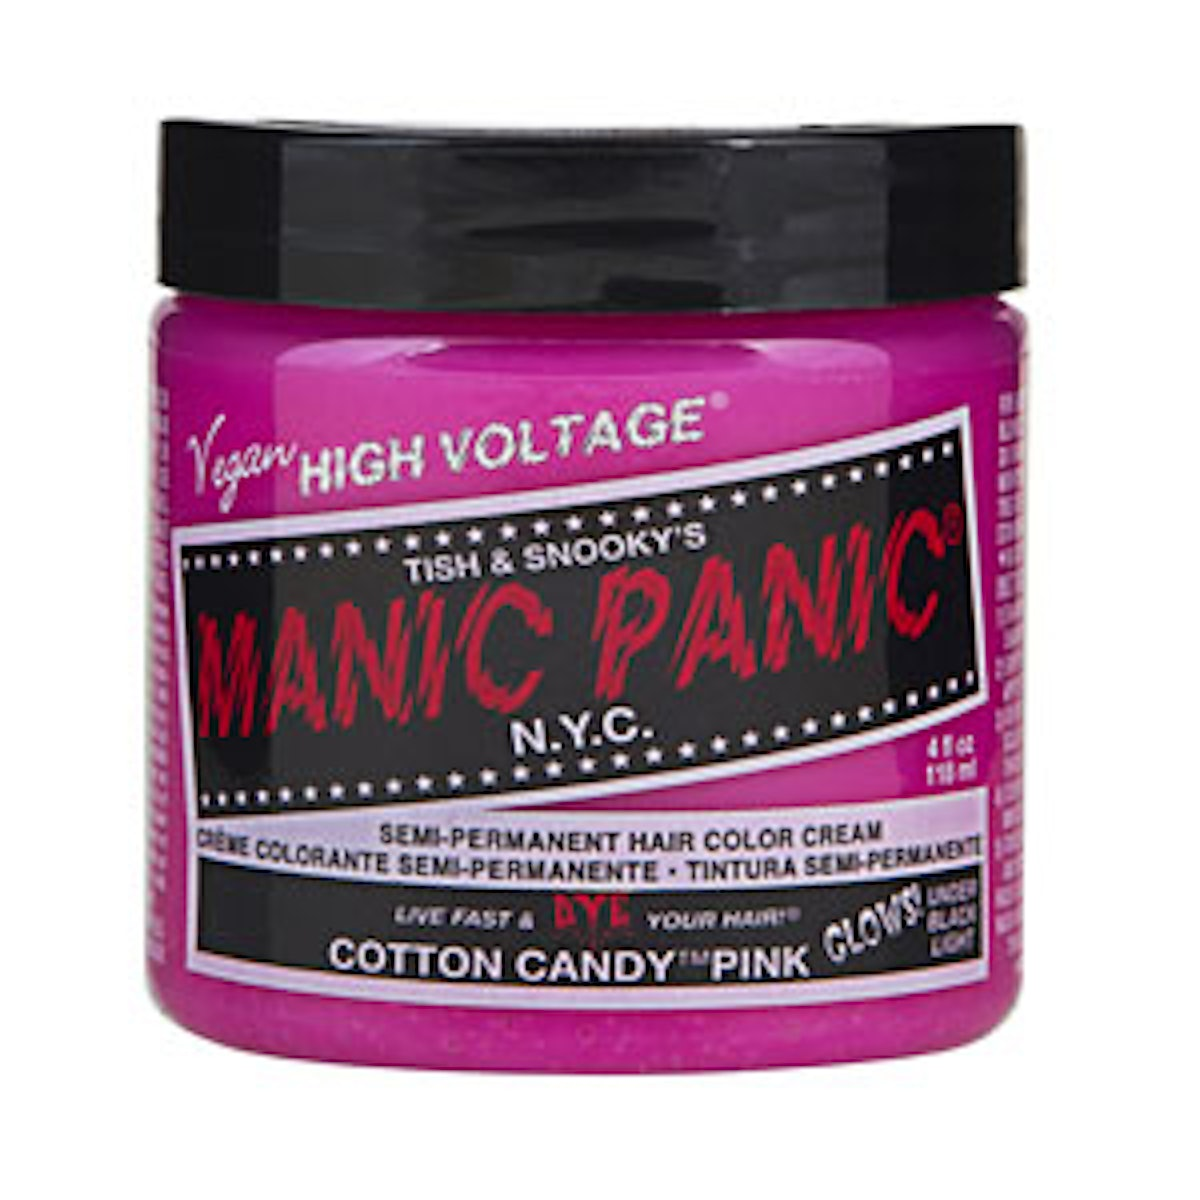 Hair Color Cream in Cotton Candy Pink